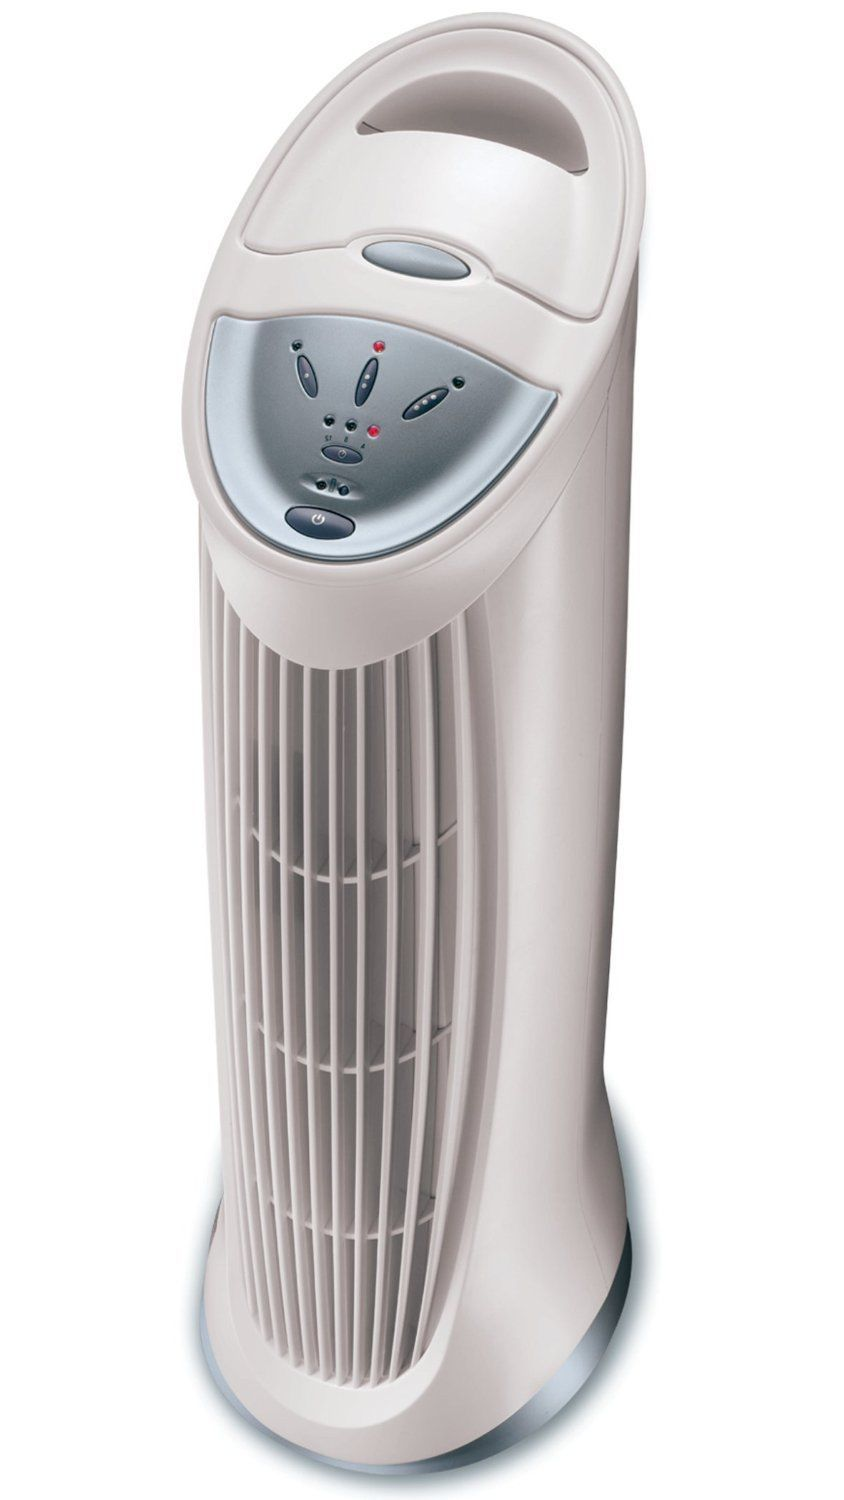 Small Air Cleaners : Room air purifier tower permanent hepa type filter cleaner